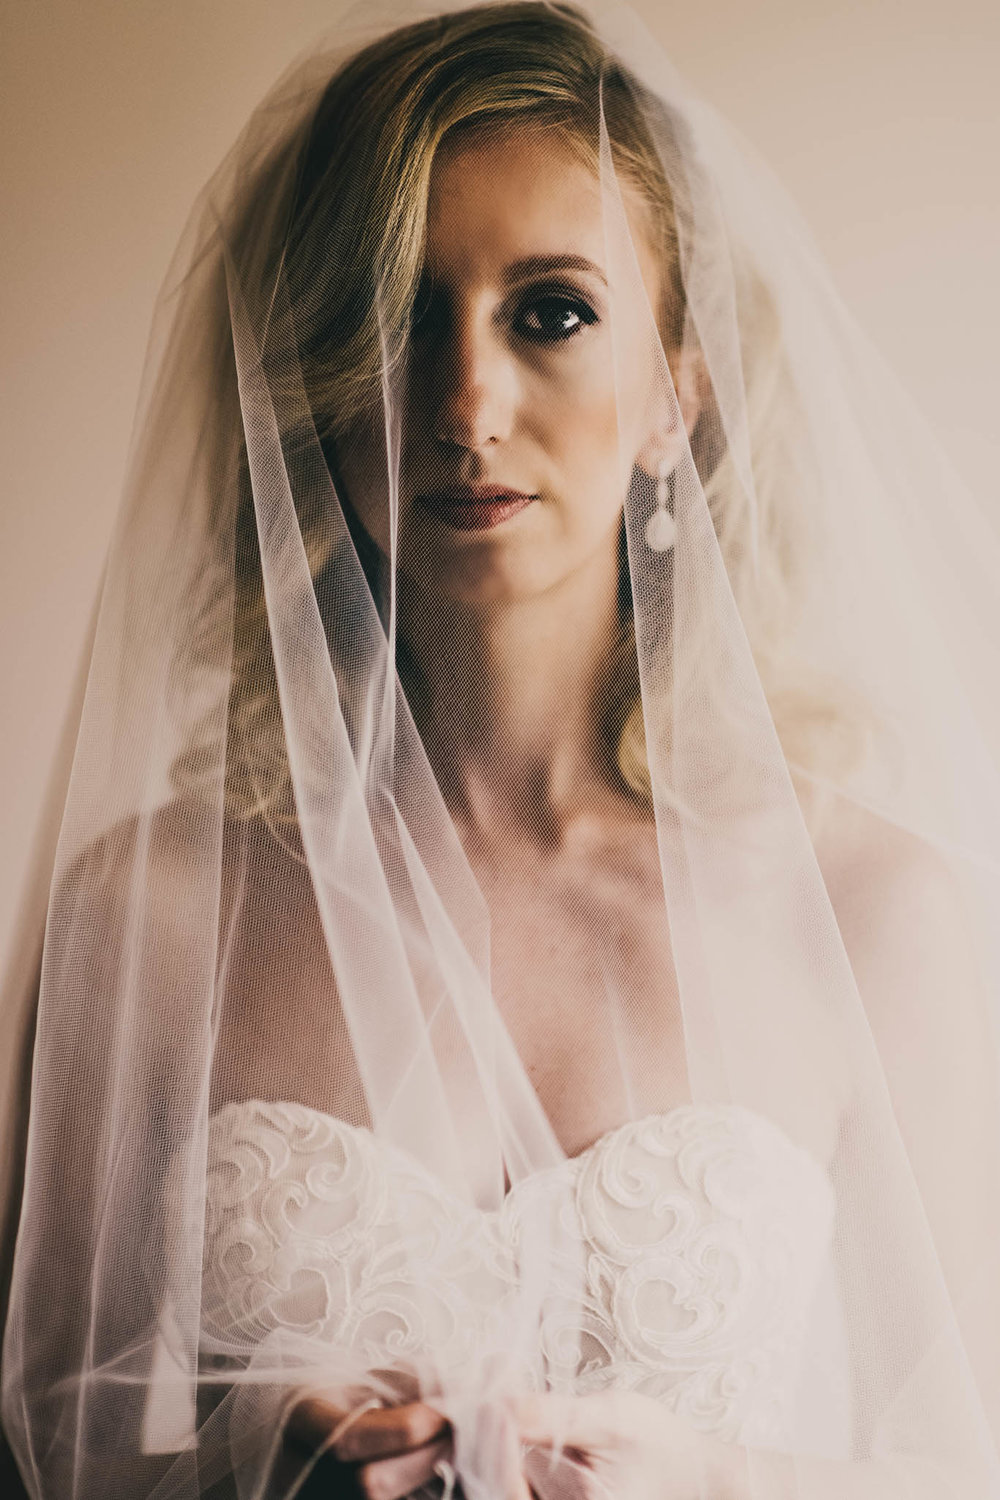 bride behind her veil before her wedding ceremony